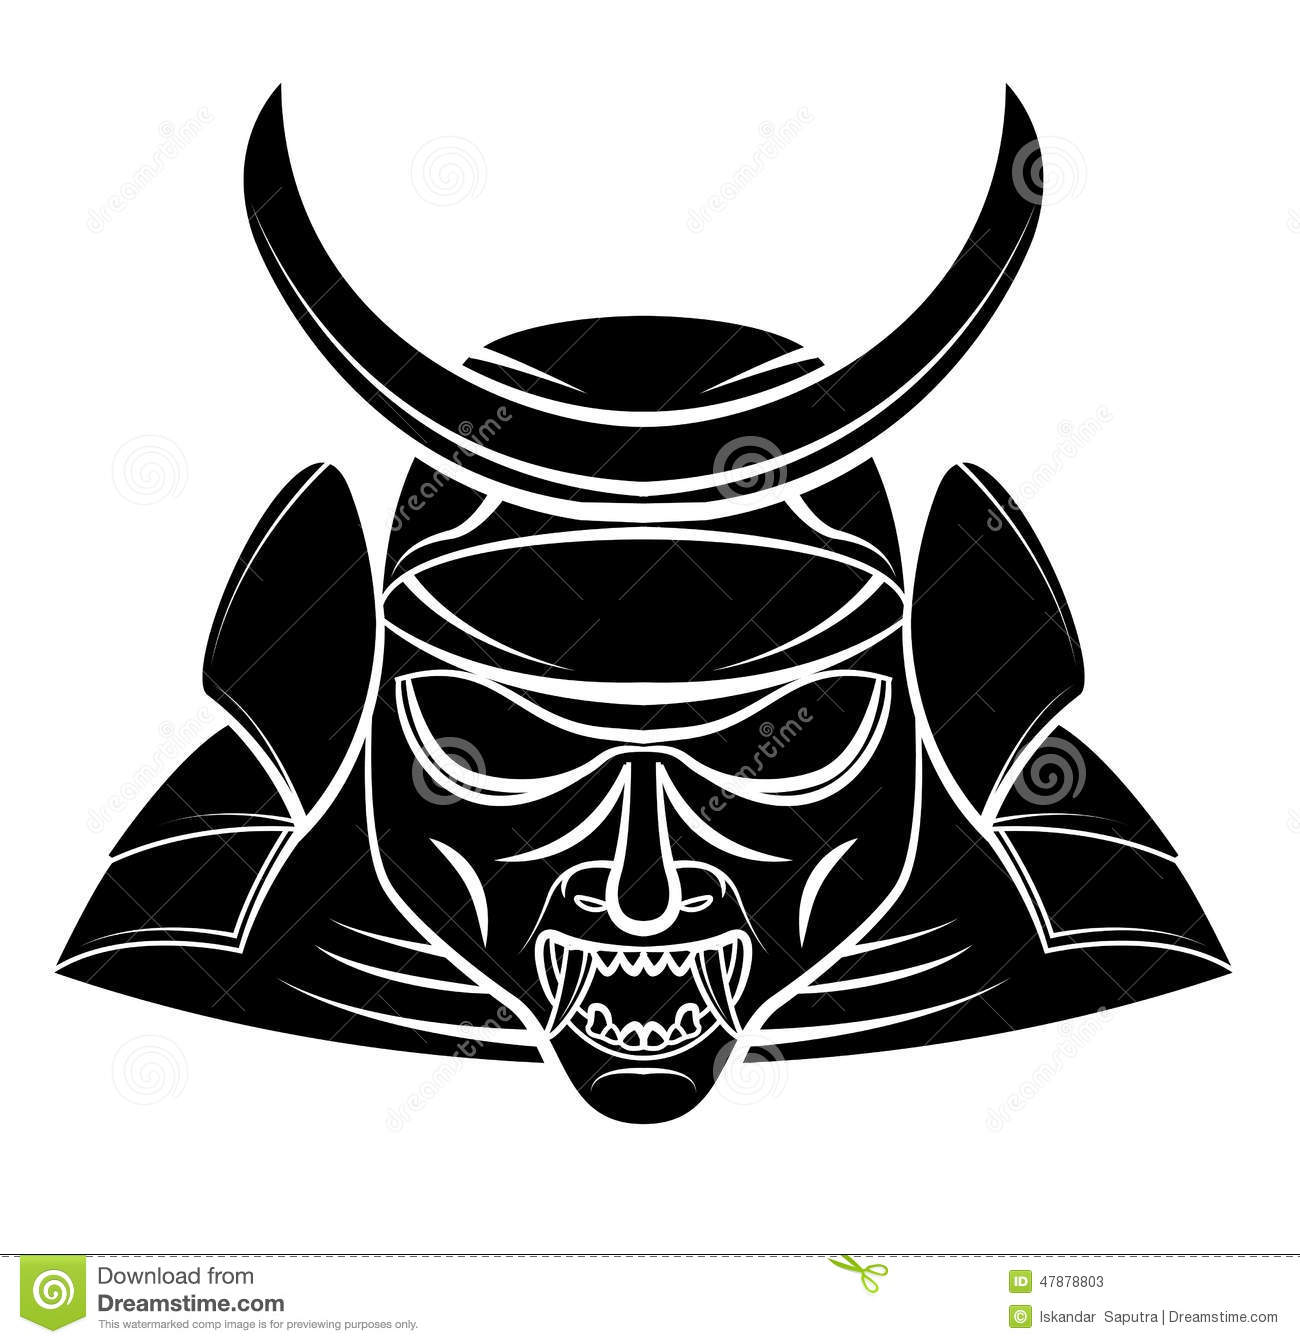 Samurai Mask Stock Vector - Image: 59566547